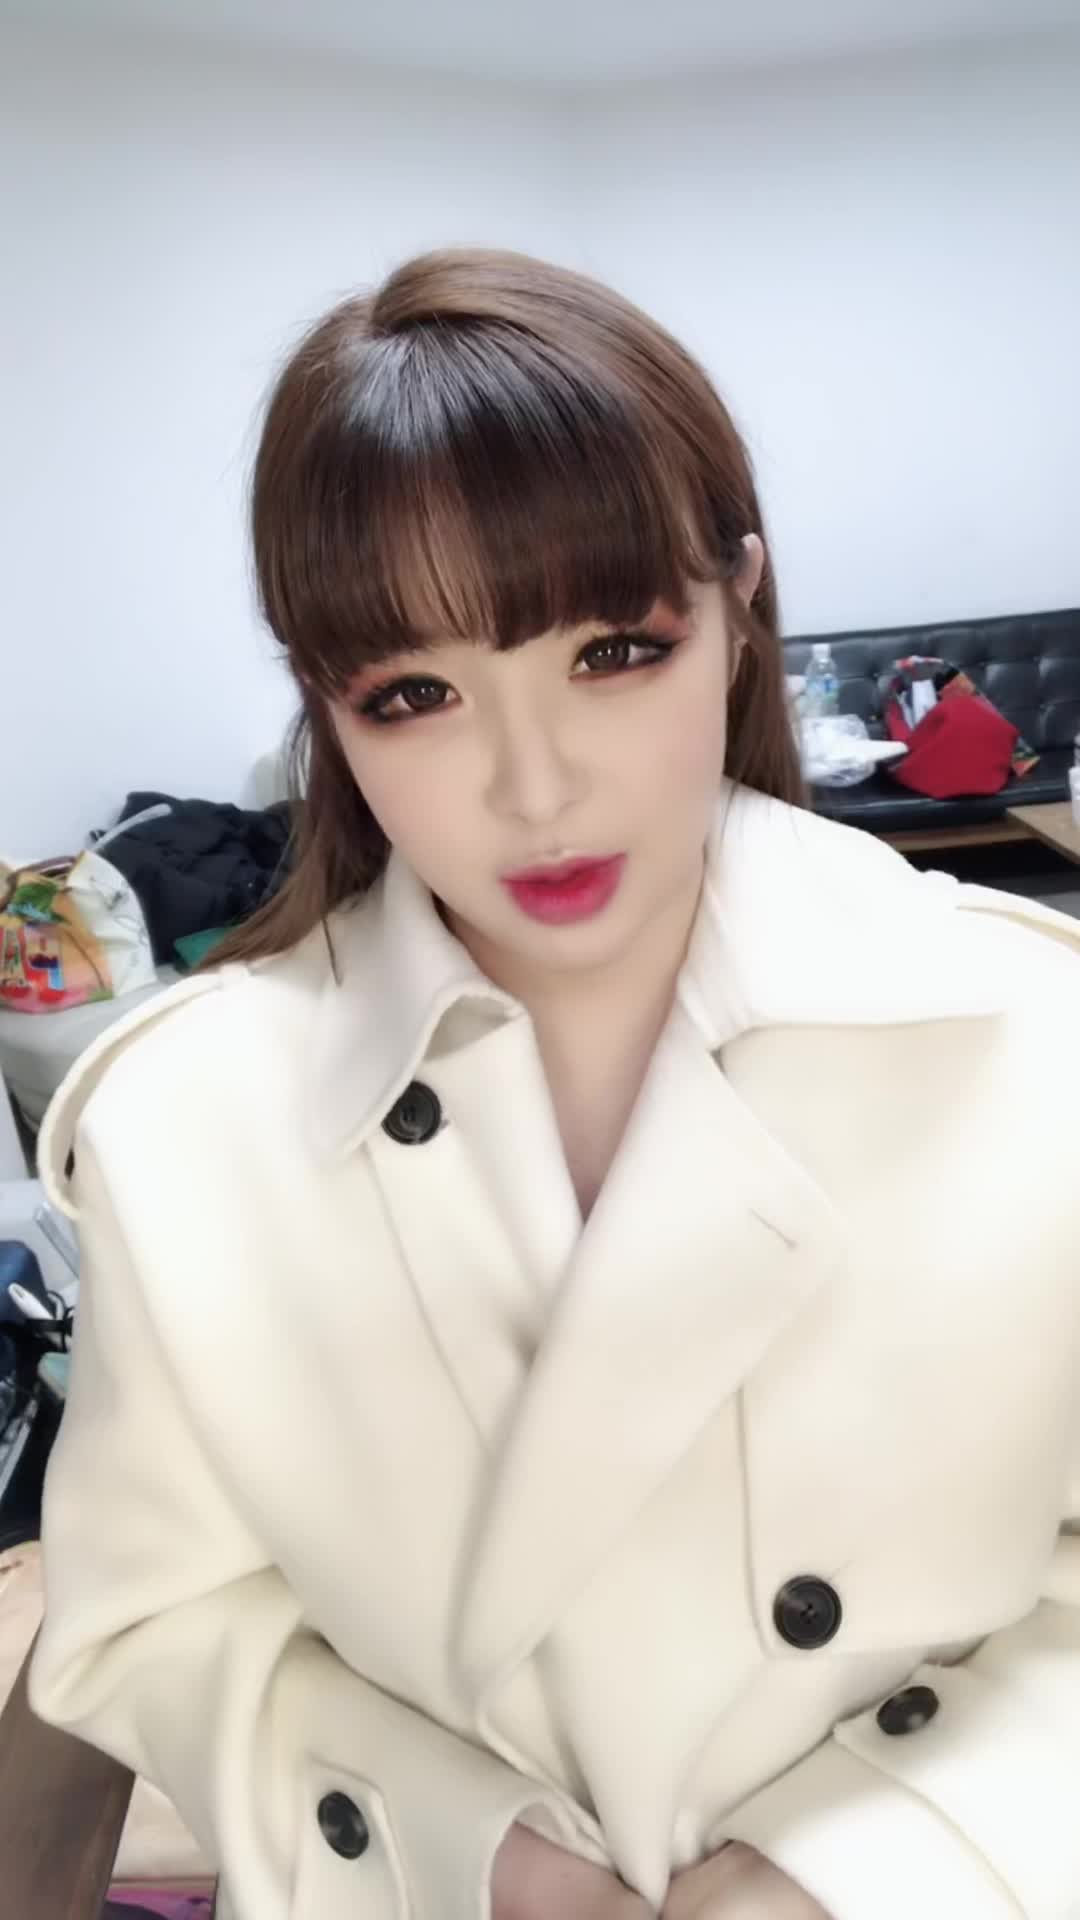 [BOM] 박봄 (PARK BOM) VLIVE Channel open!